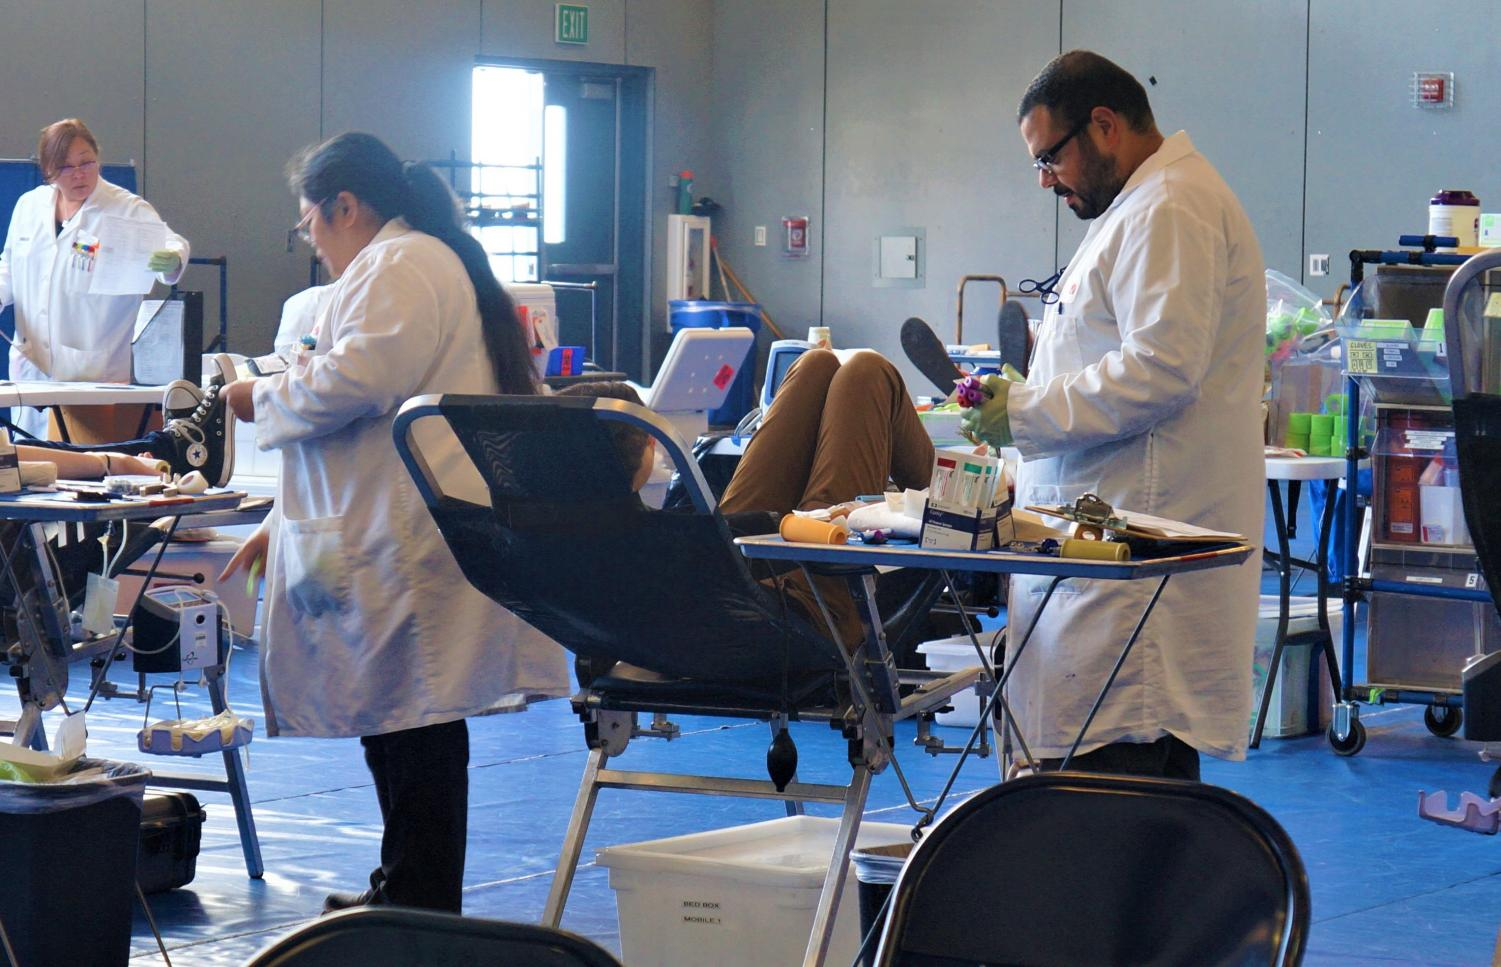 The SBC staff aid students who are donating blood to help those in need.